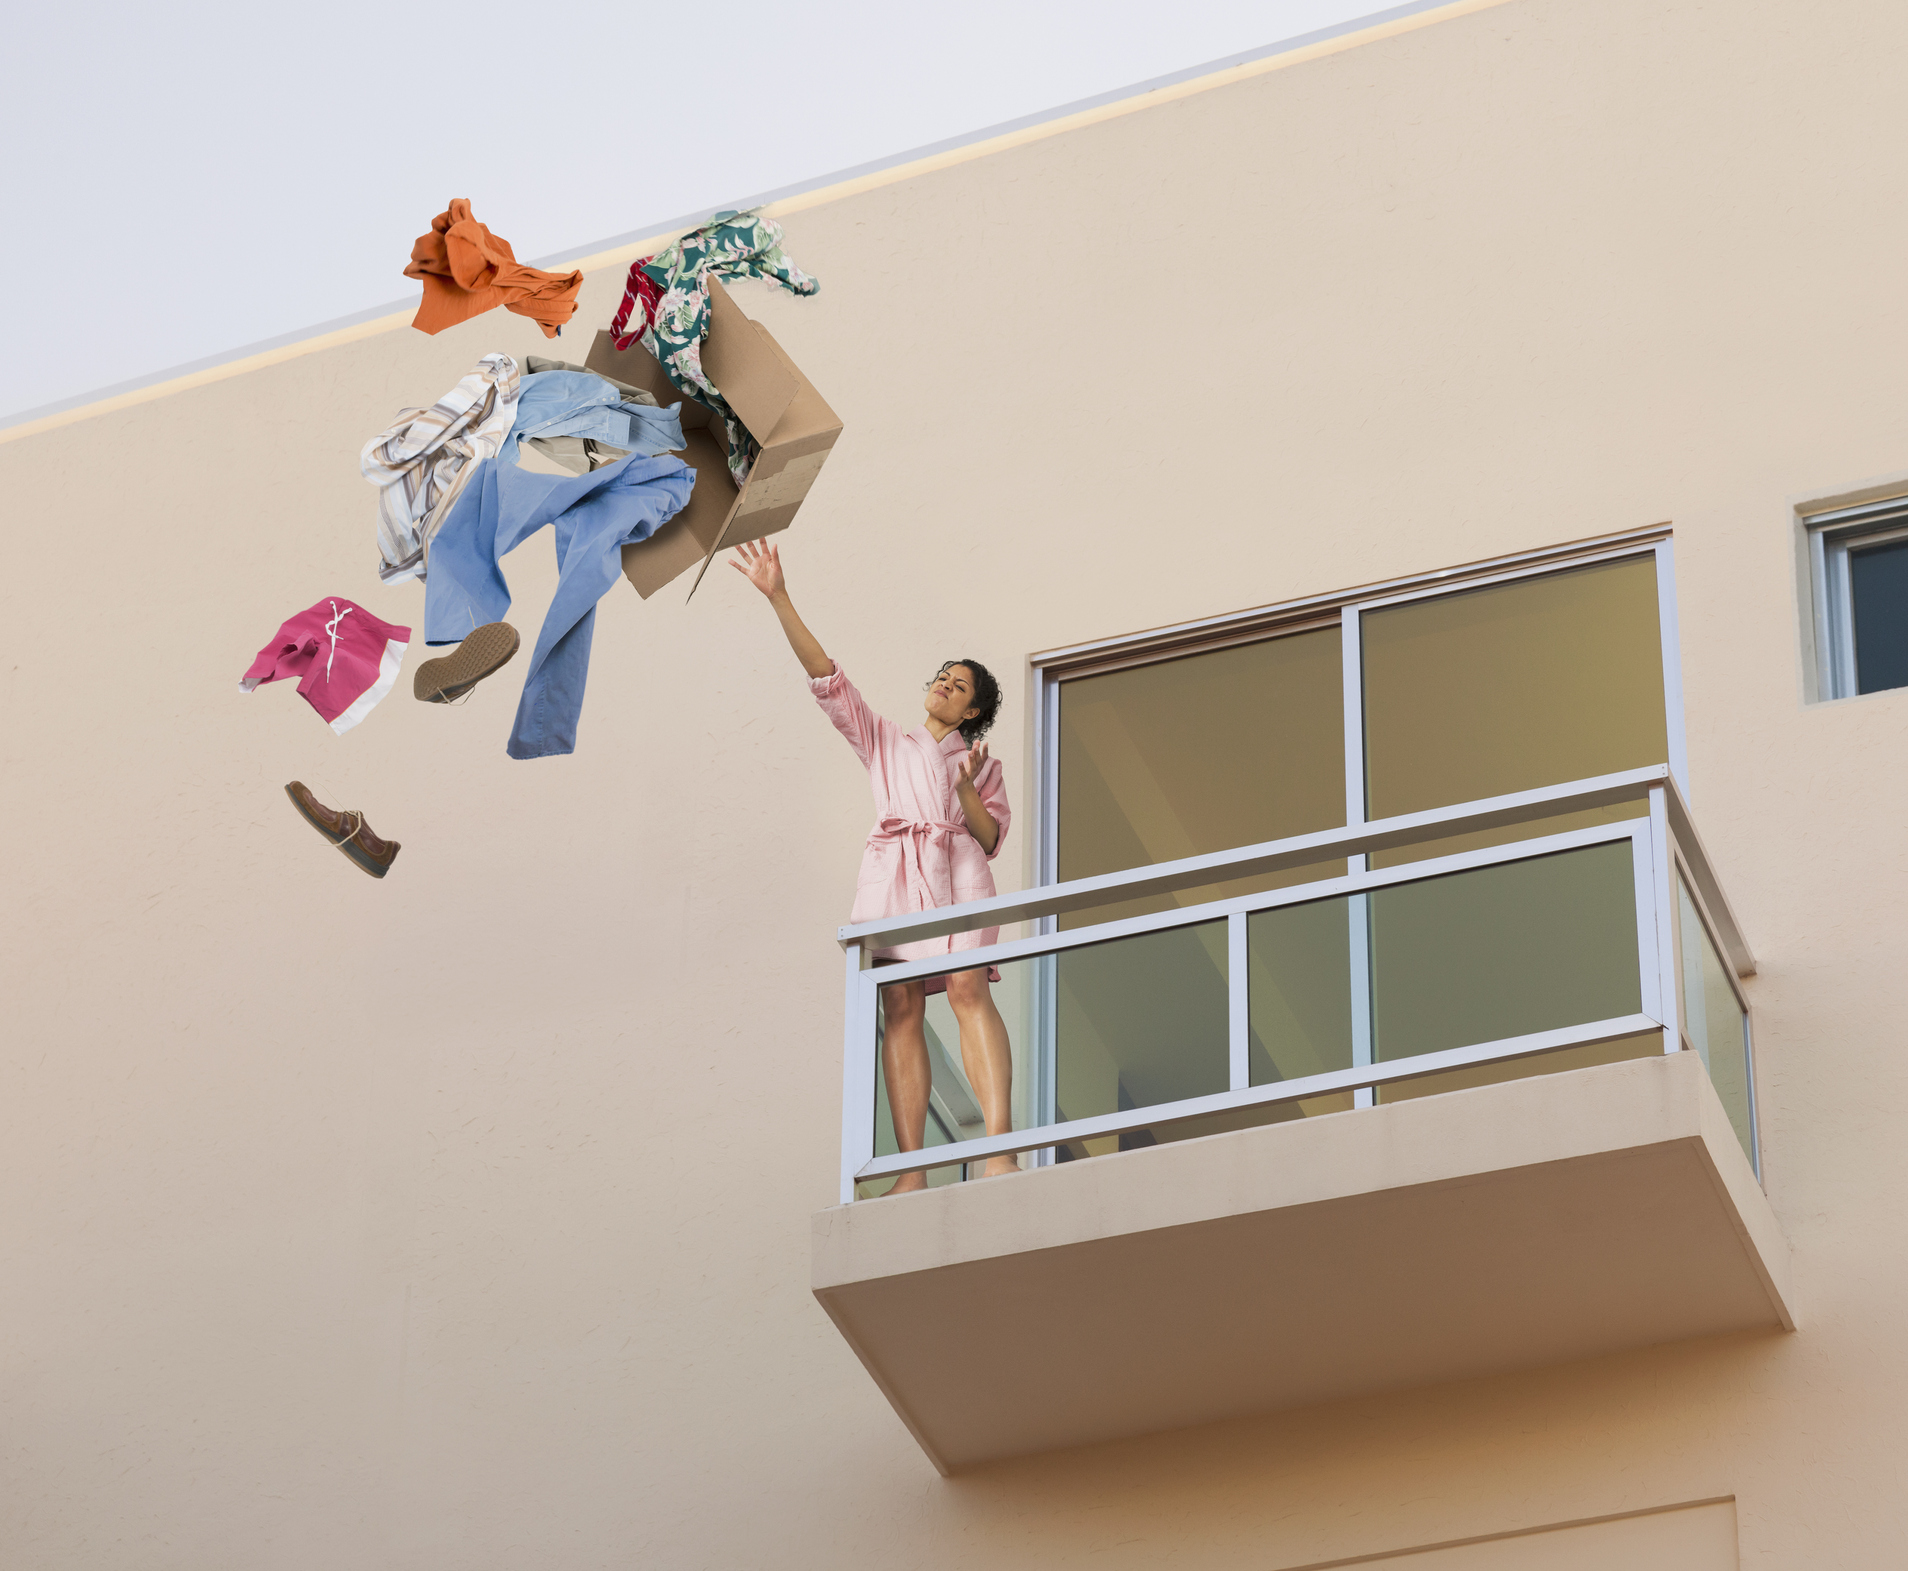 Mixed race woman throwing clothes off balcony.